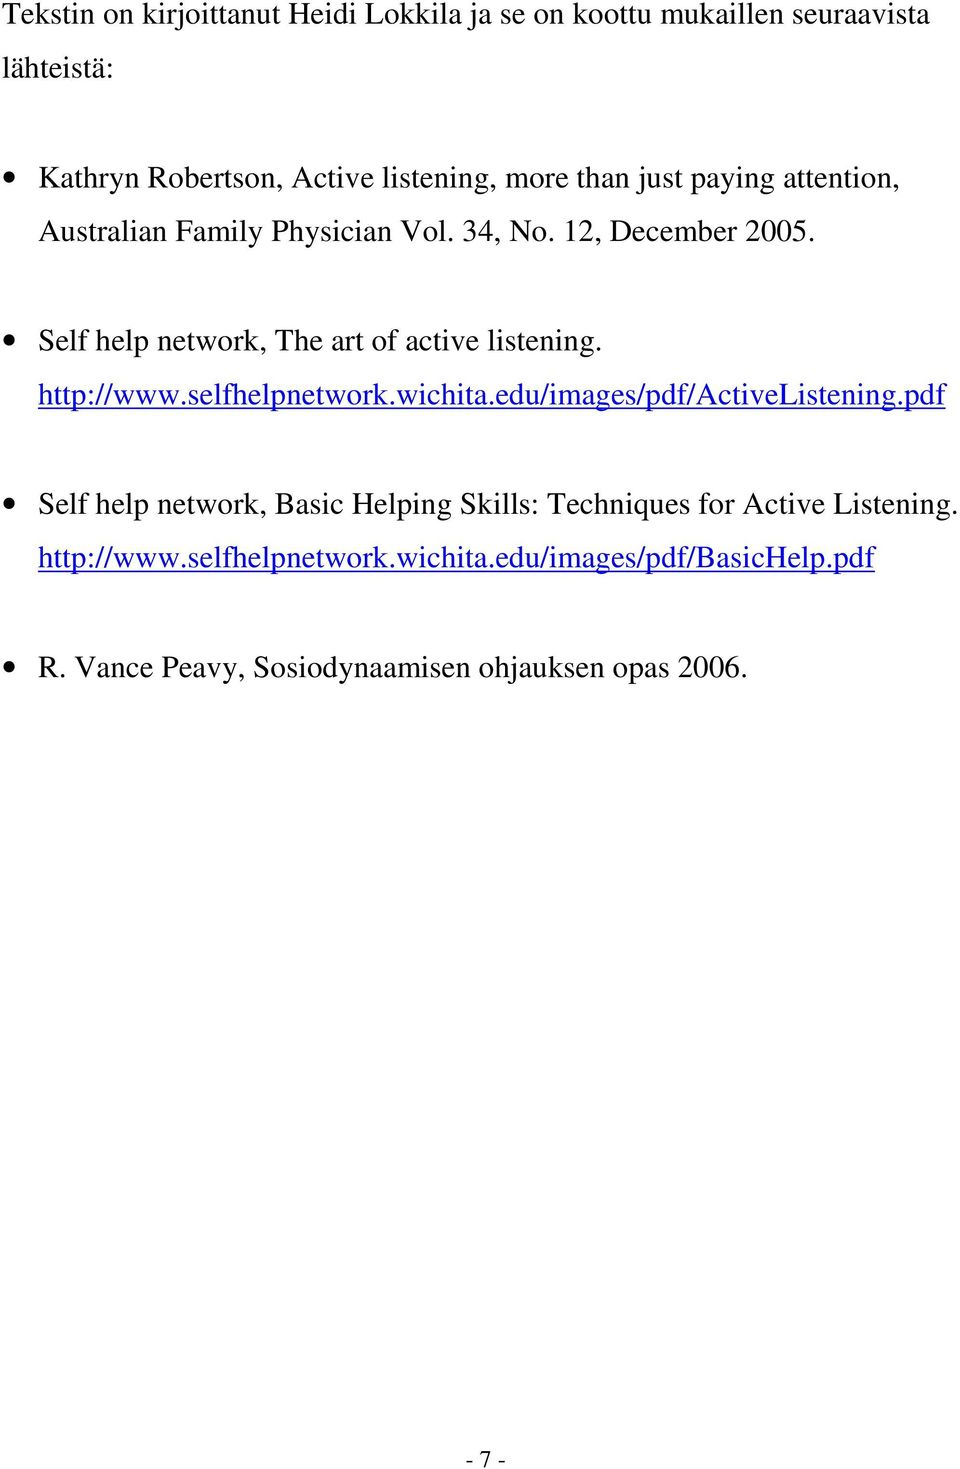 Self help network, The art of active listening. http://www.selfhelpnetwork.wichita.edu/images/pdf/activelistening.